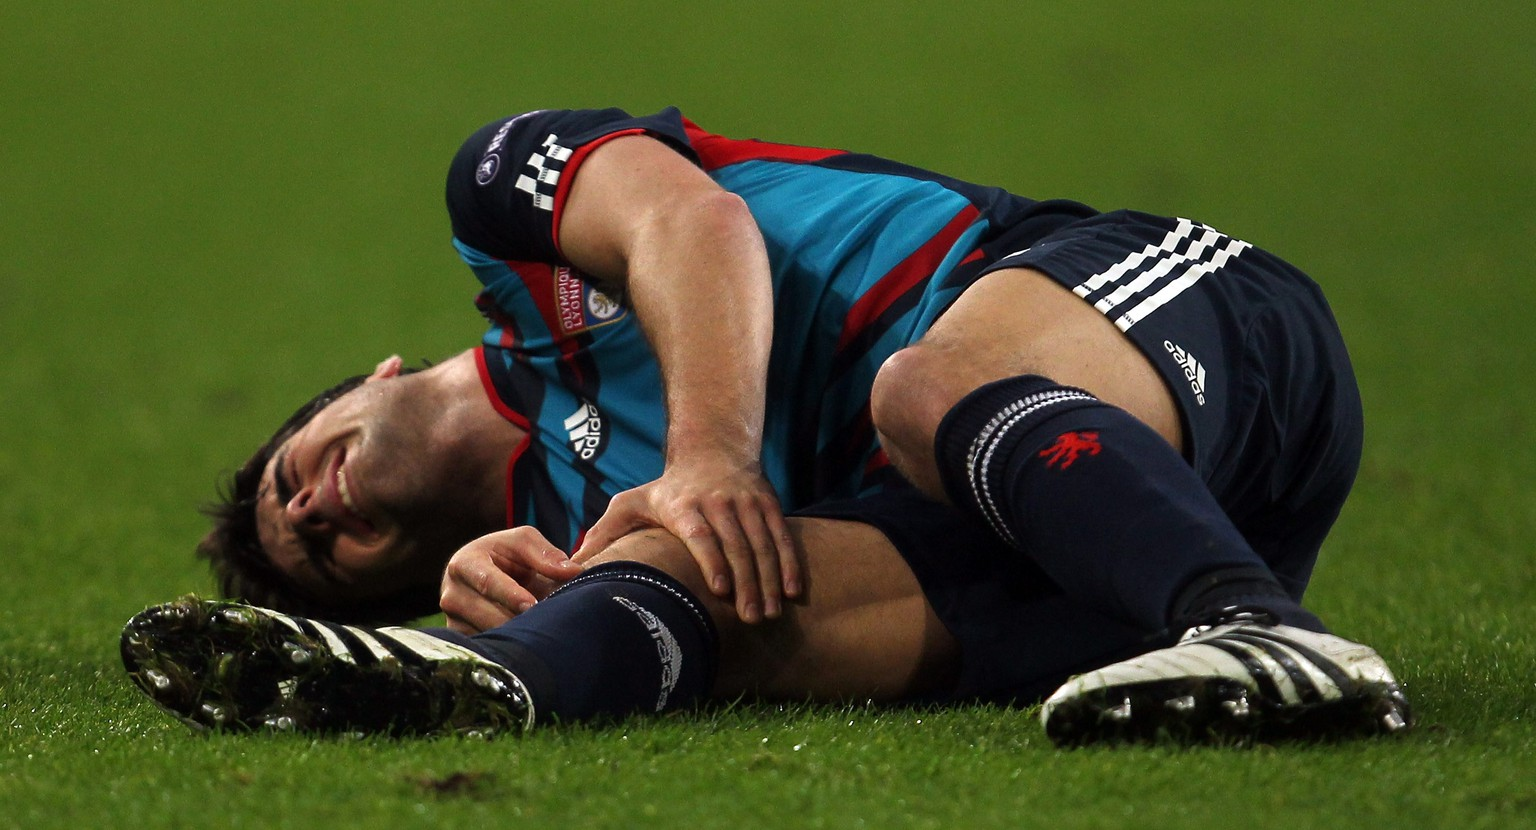 GELSENKIRCHEN, GERMANY - NOVEMBER 24:  Yoann Gourcuff of Lyonnais lies injured on the pitch during the UEFA Champions League group B match between FC Schalke 04 and Olympique Lyonnais at Veltins Arena on November 24, 2010 in Gelsenkirchen, Germany.  (Photo by Lars Baron/Bongarts/Getty Images)